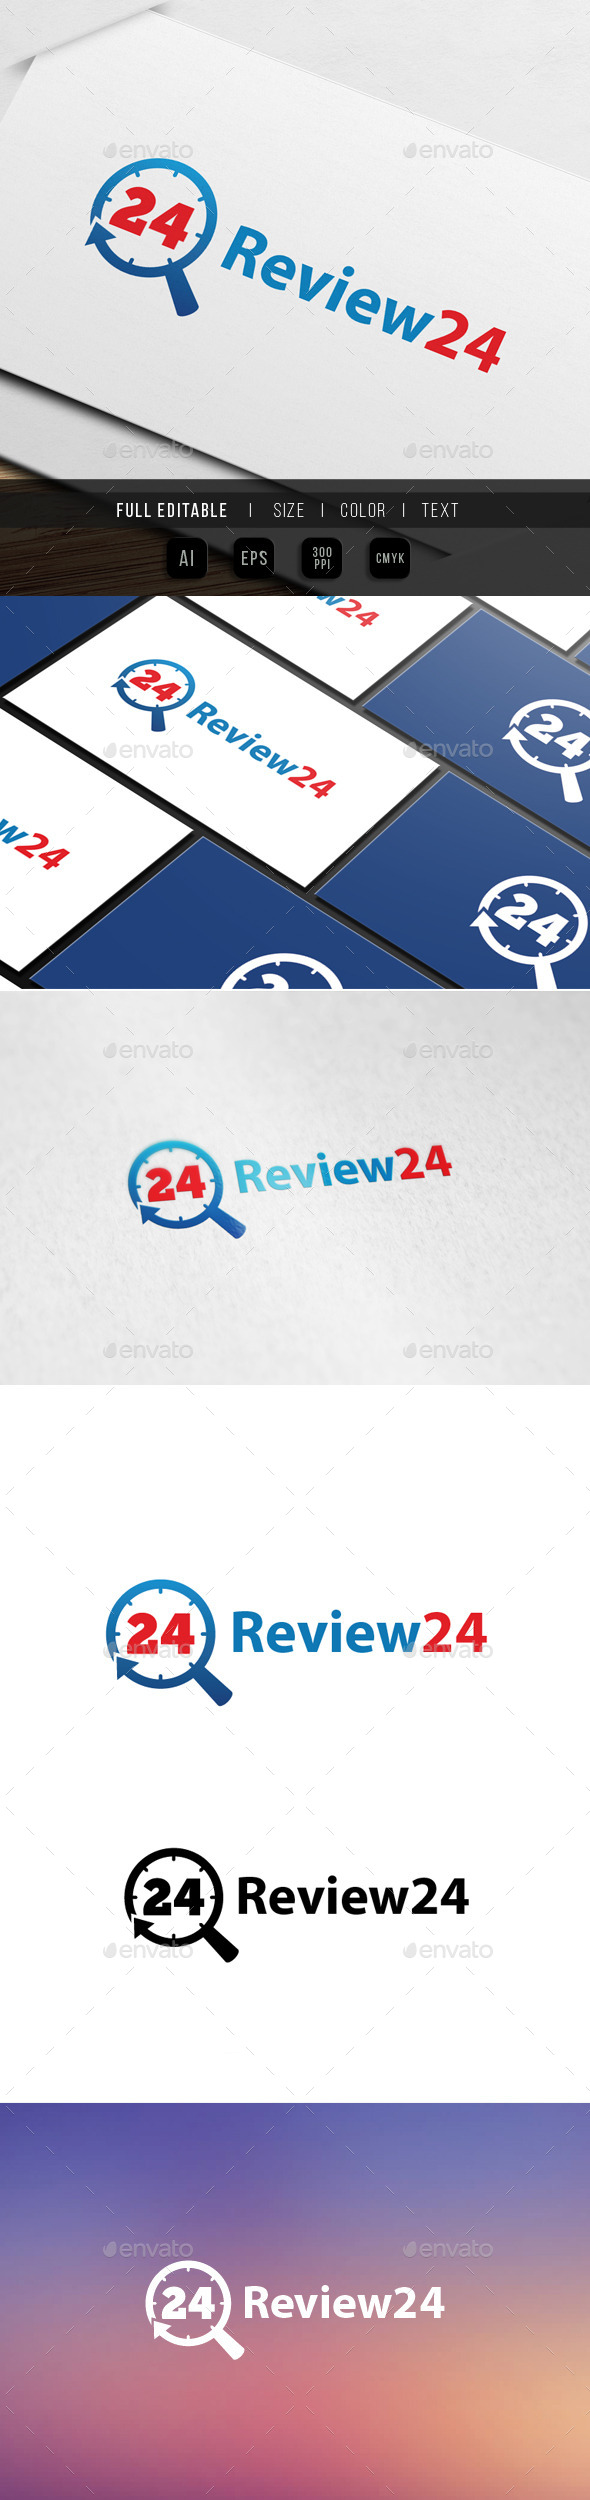 review search 24 hour logo